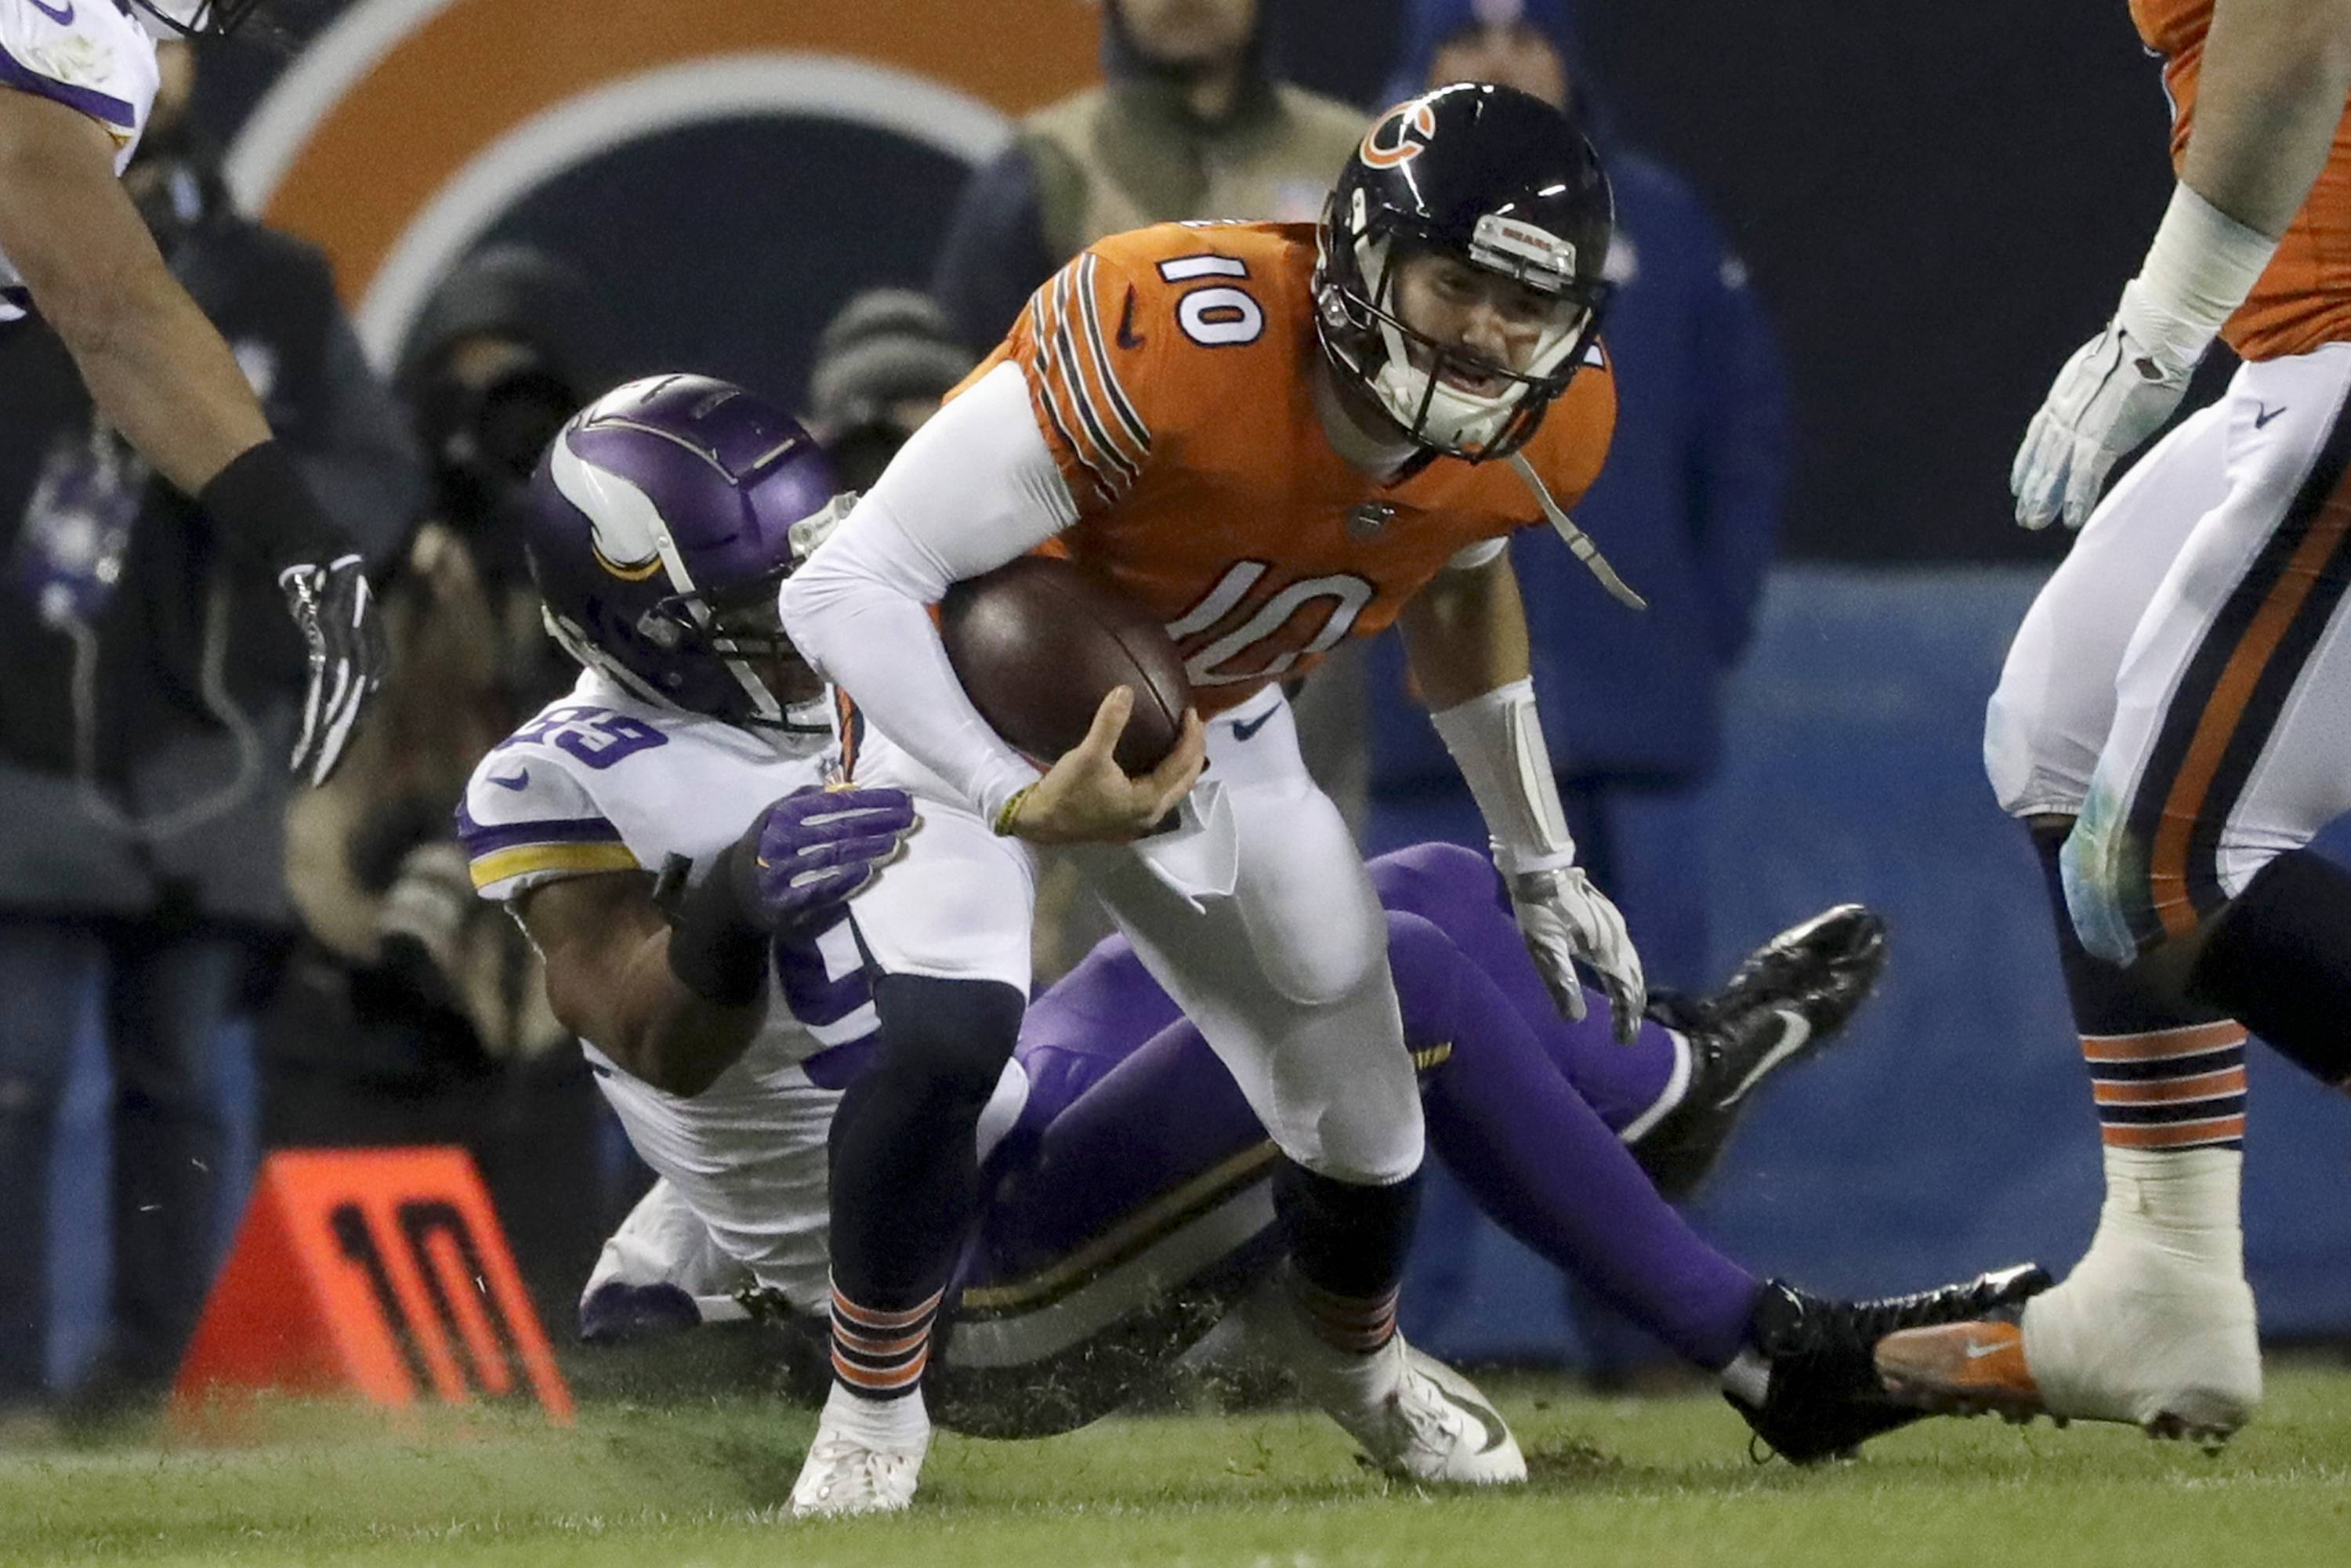 Minnesota Vikings defensive end Danielle Hunter tackles Chicago Bears quarterback Mitchell Trubisky (10) during the first half of an NFL football game Sunday, Nov. 18, 2018, in Chicago. (AP Photo/Nam Y. Huh)